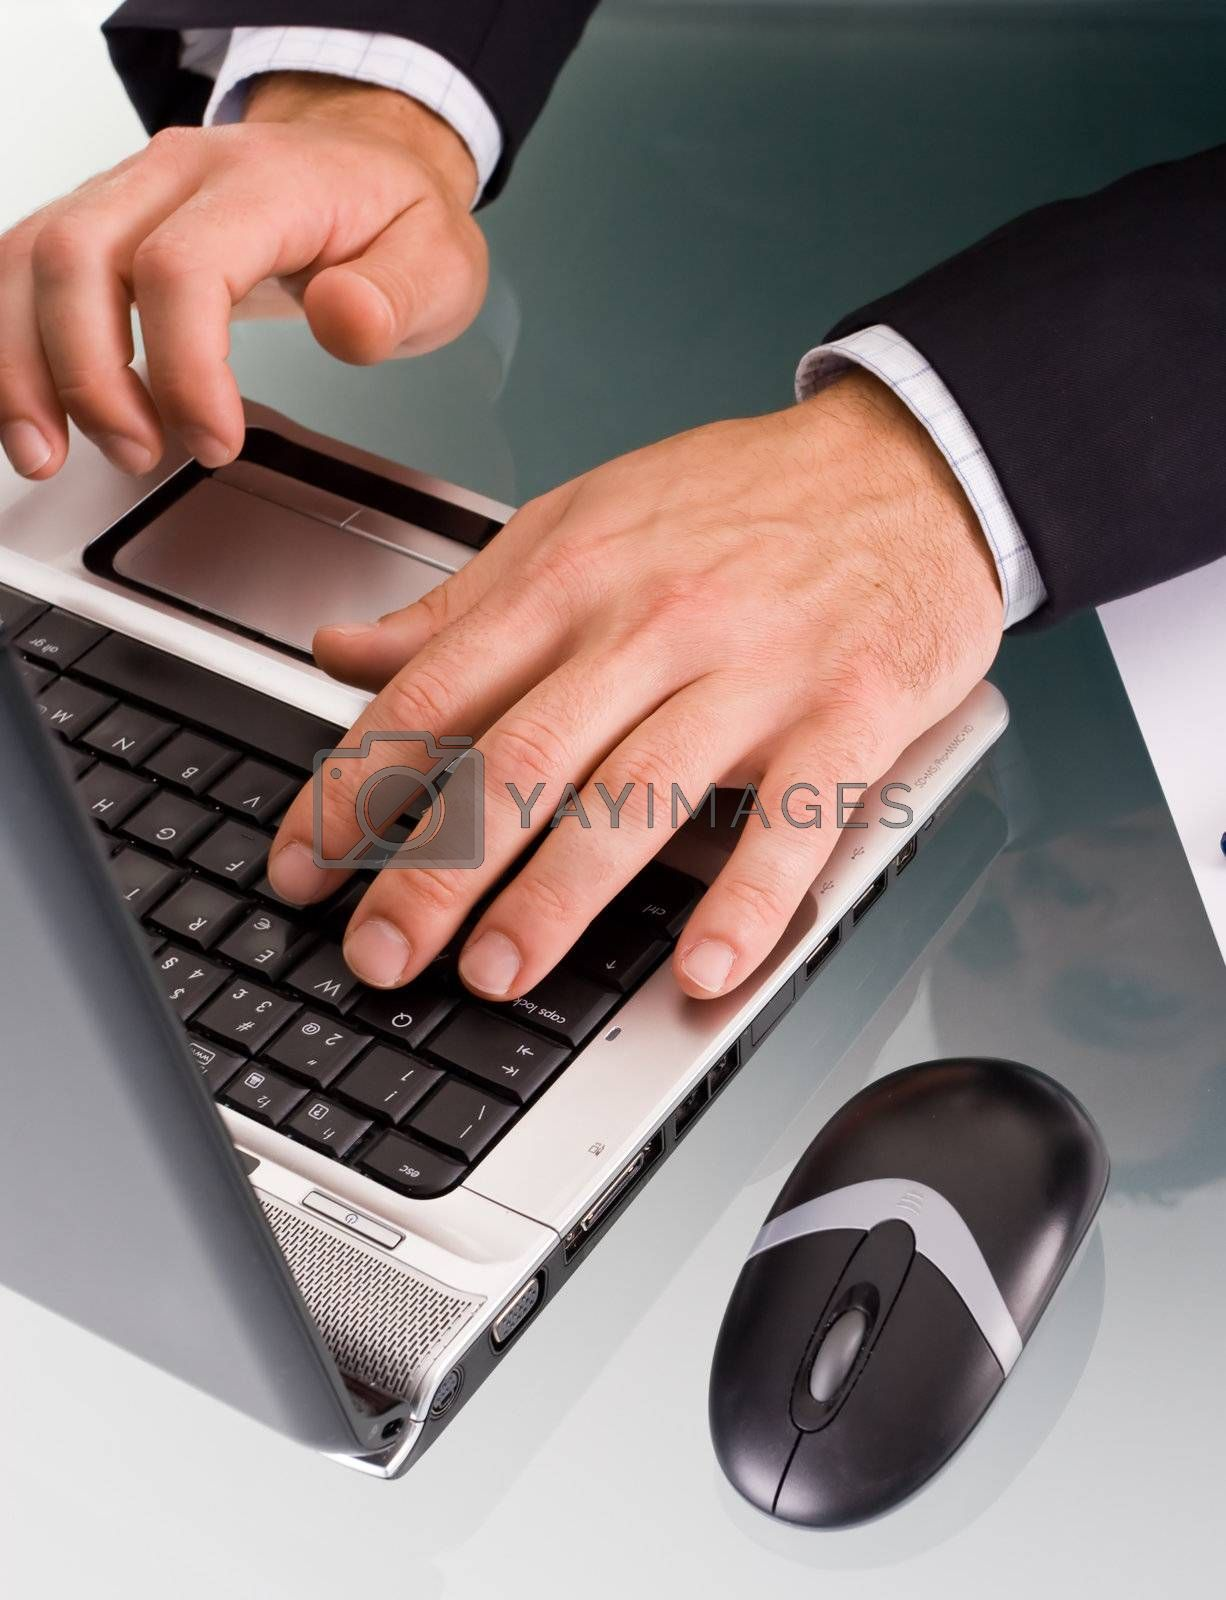 Male hands typing on a laptop computer.